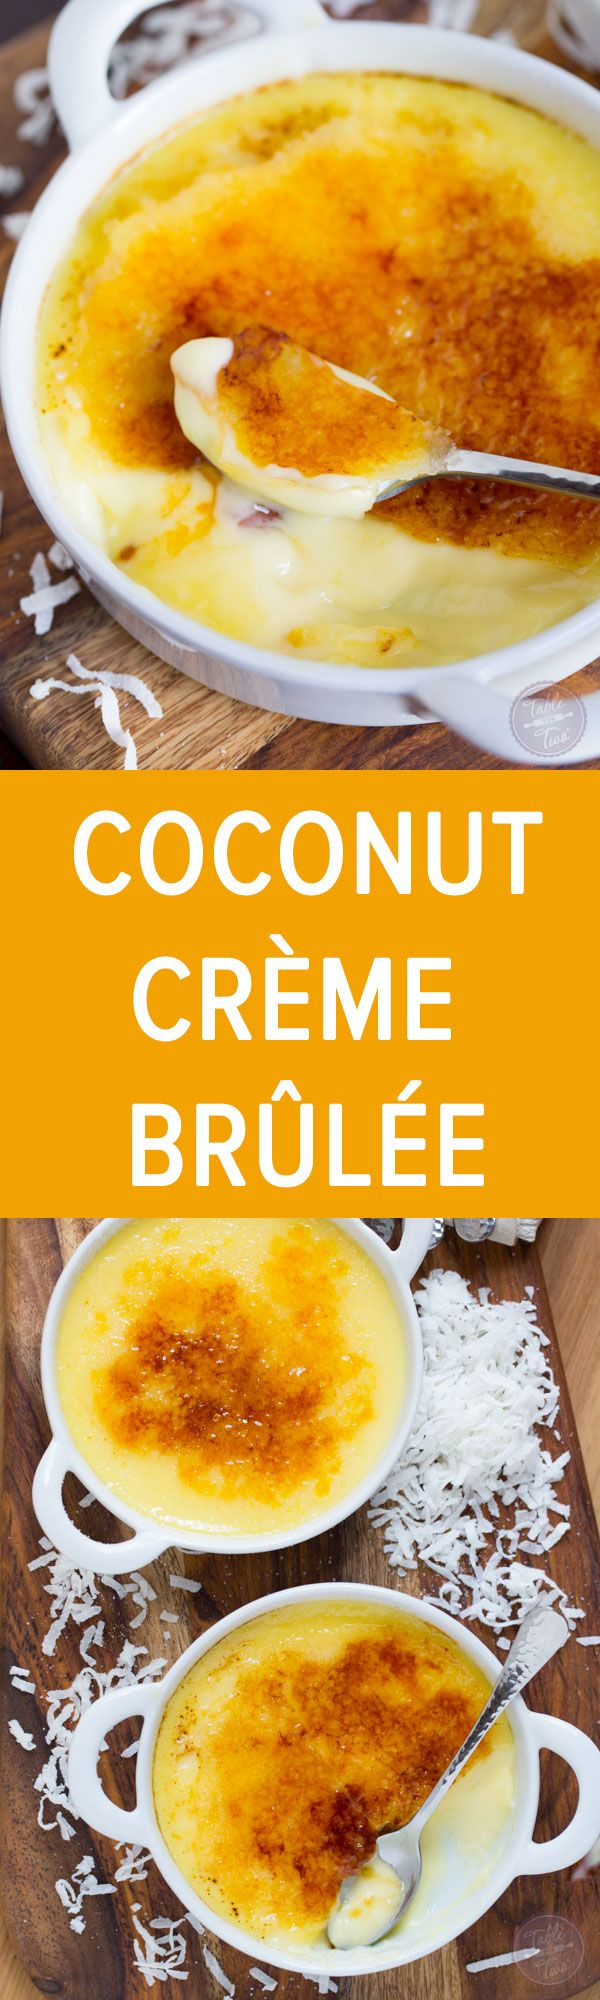 Coconut Crème Brûlée is so easy to make and tastes like paradise!